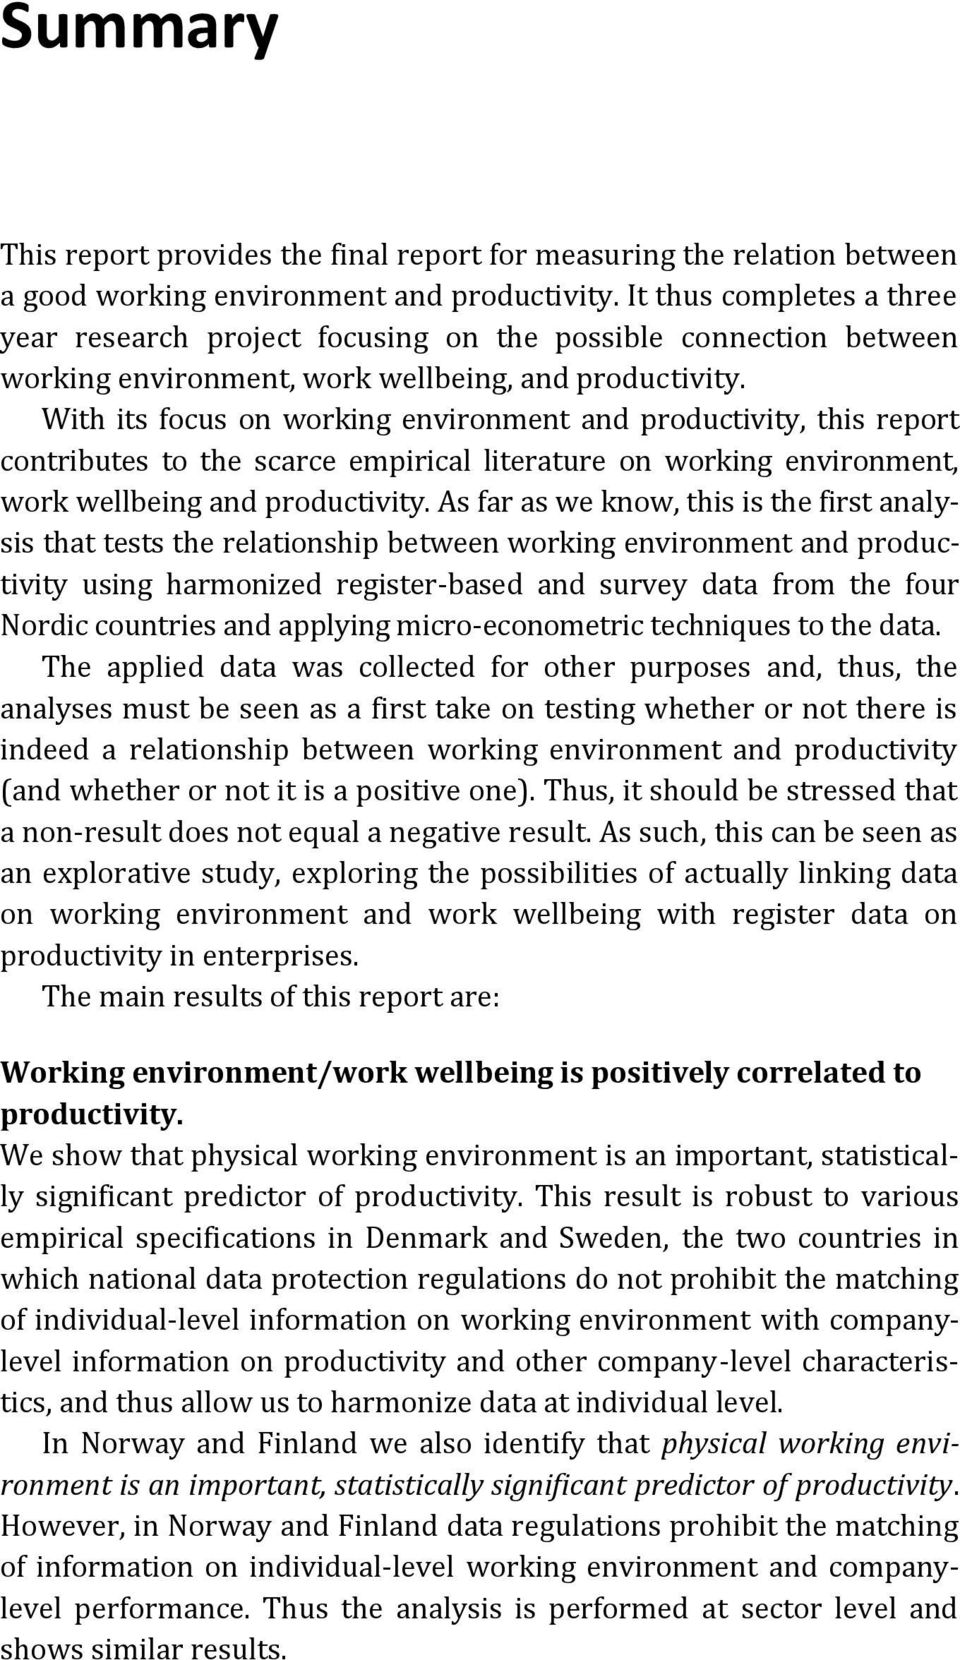 With its focus on working environment and productivity, this report contributes to the scarce empirical literature on working environment, work wellbeing and productivity.